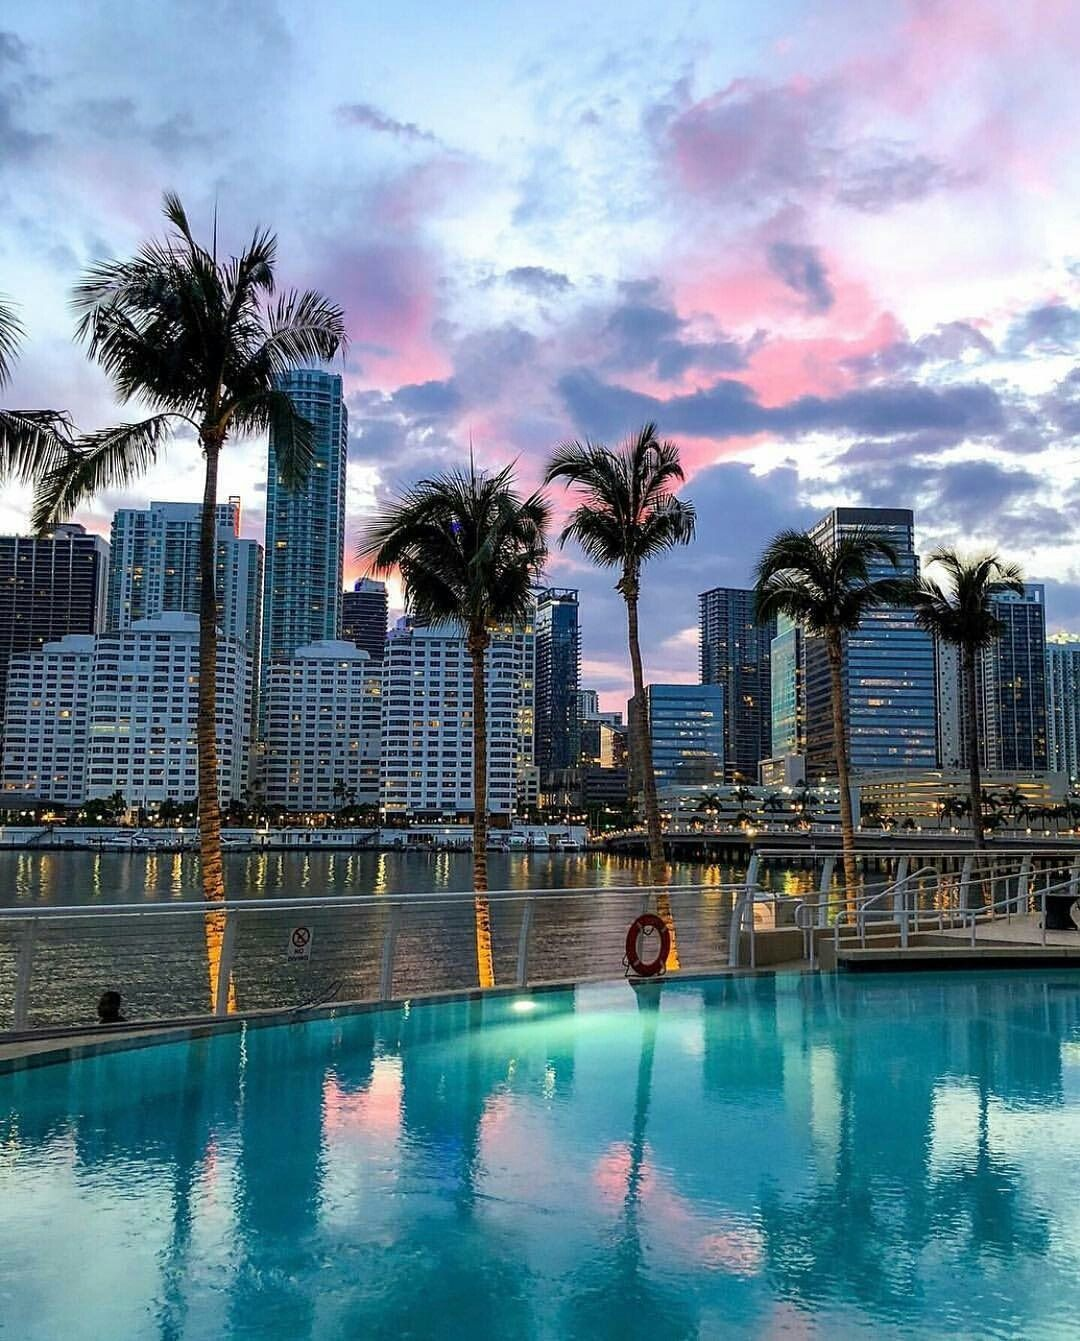 Things To Do In Brickell